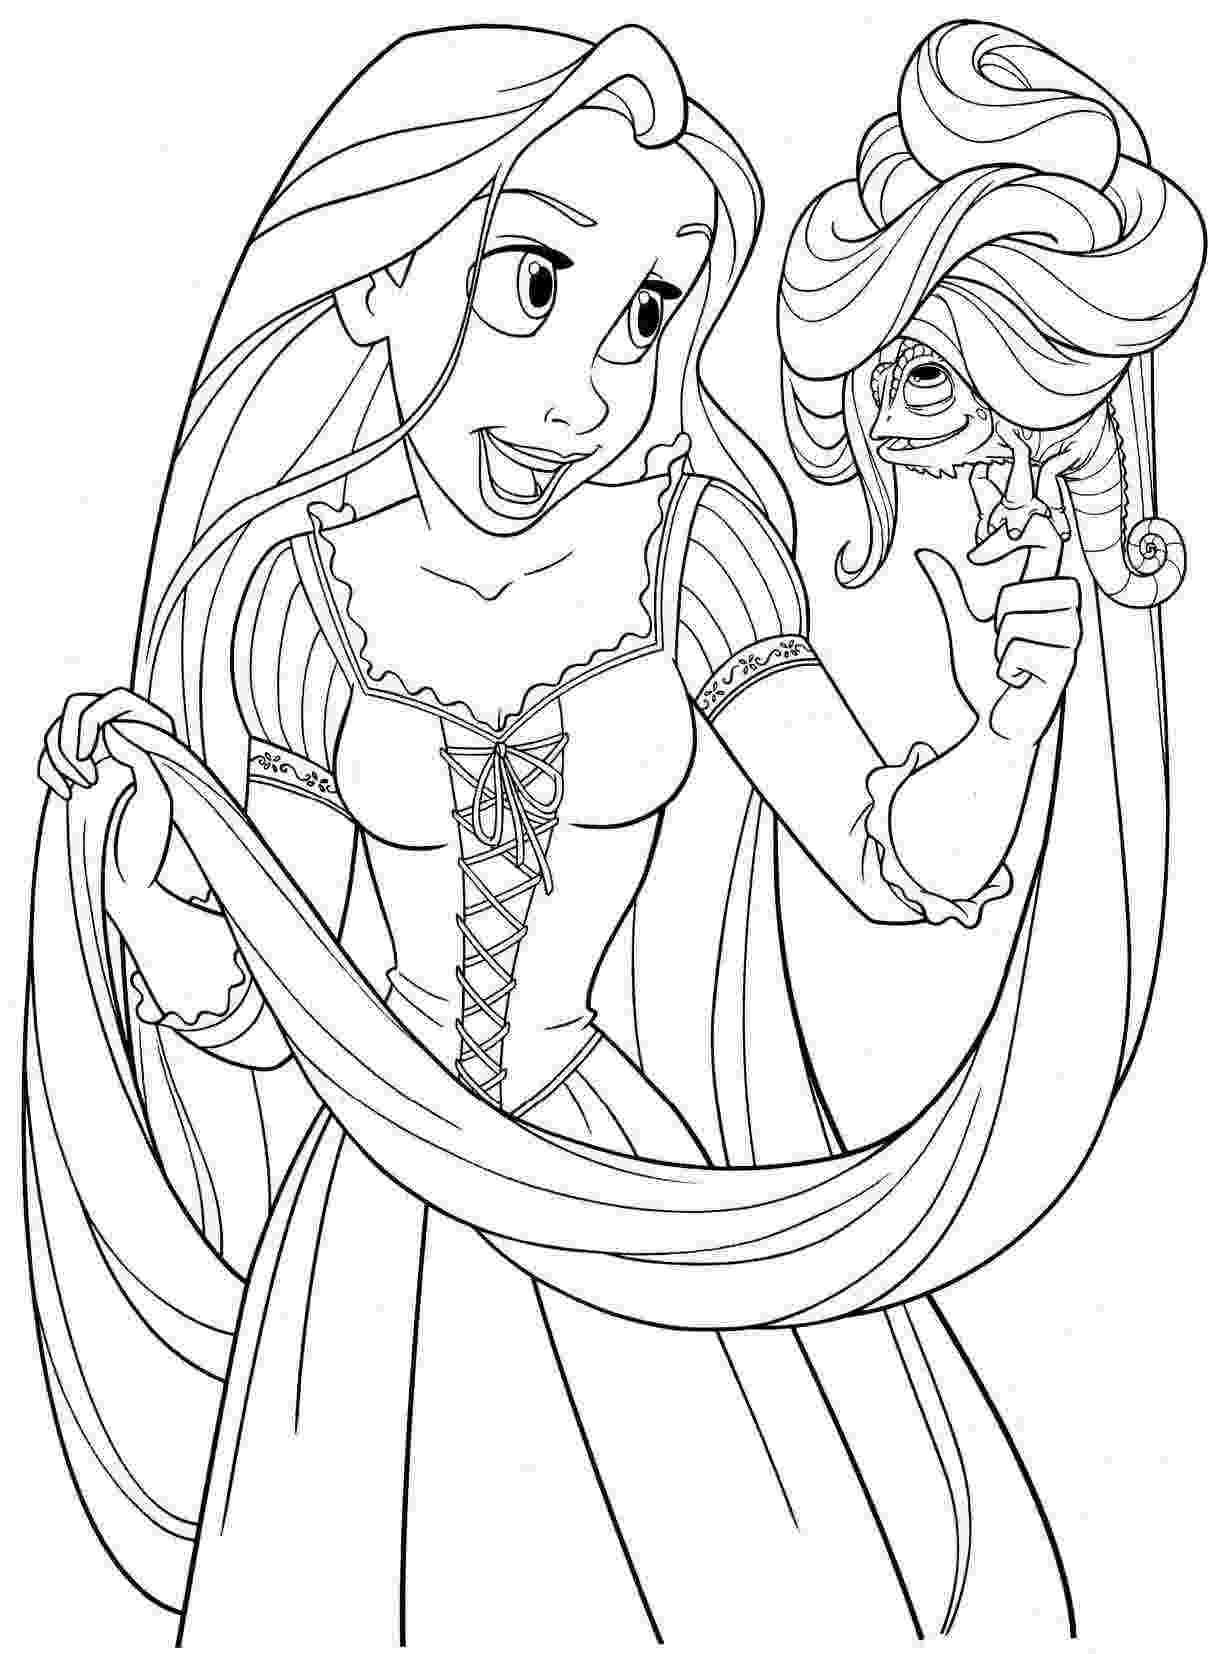 rapunzel pictures to print and colour disney39s tangled coloring pages disneyclipscom pictures colour print rapunzel to and